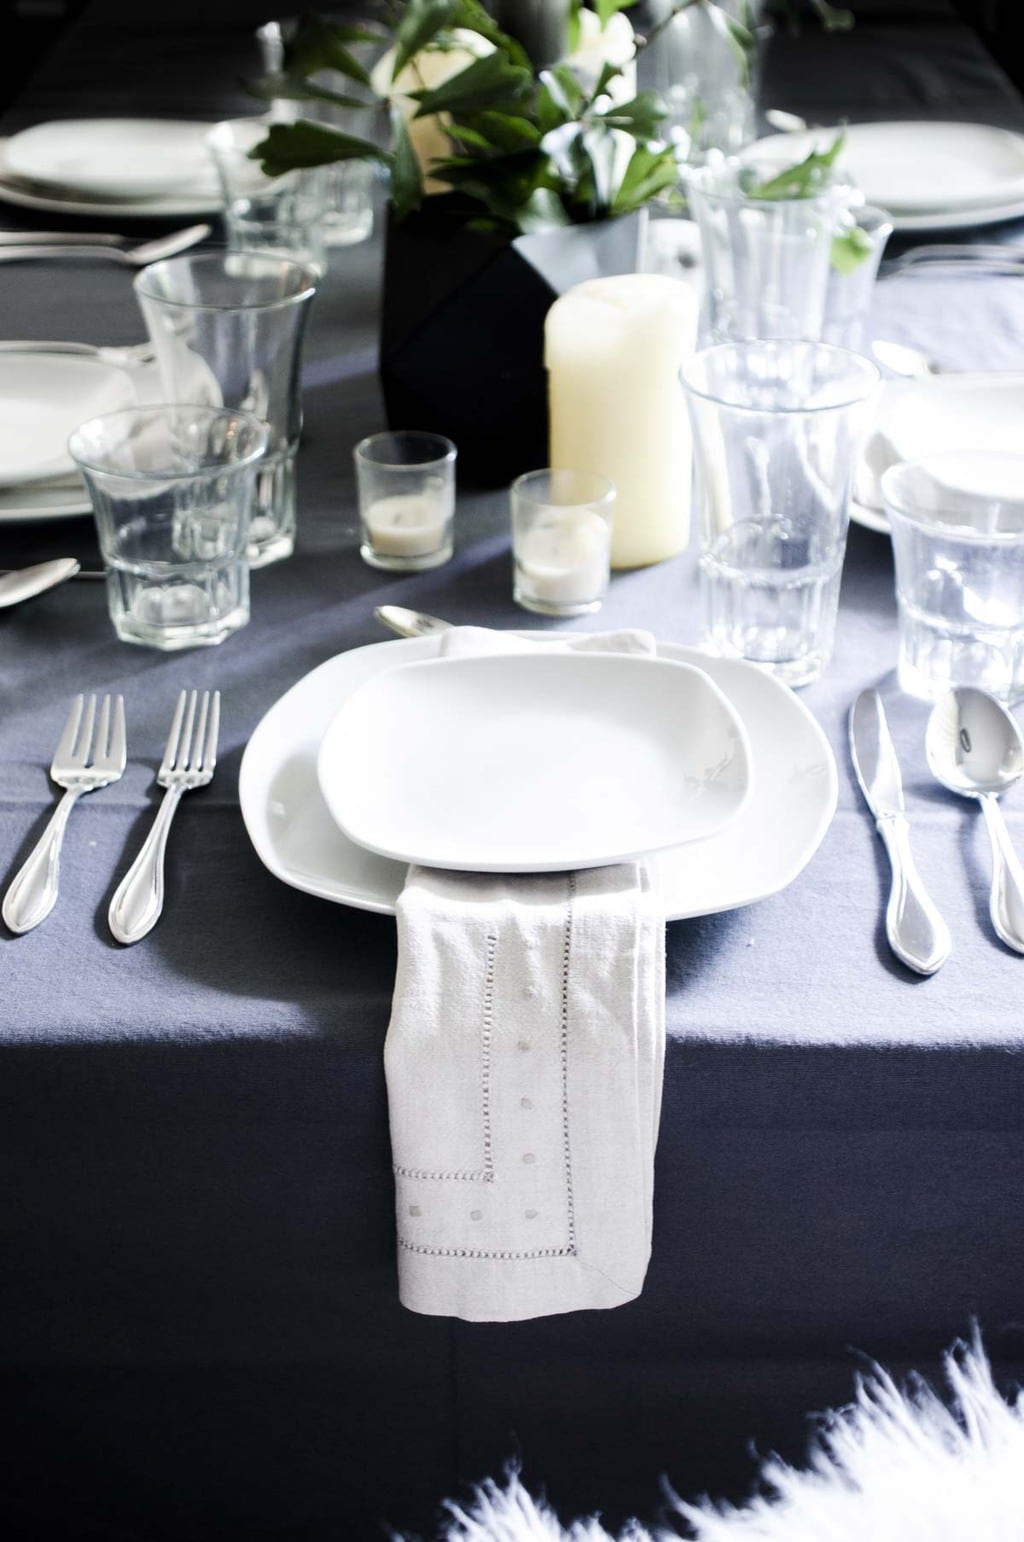 Simple restaurant table setting - Scandinavian Inspired Black White And Grey Summer Table Setting With Simple Green Arrangements